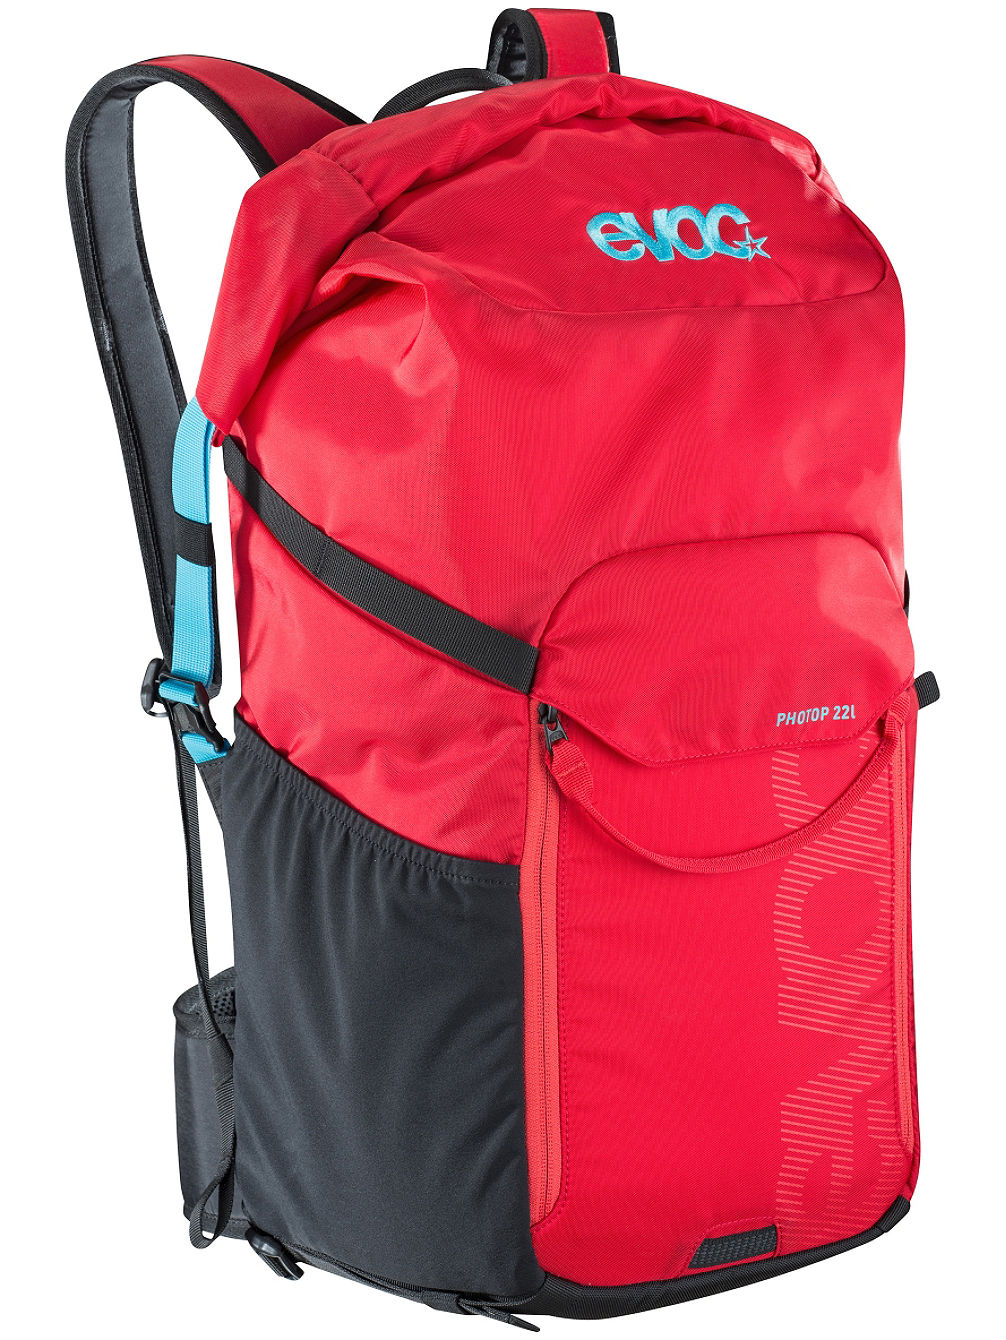 evoc-photop-22l-backpack